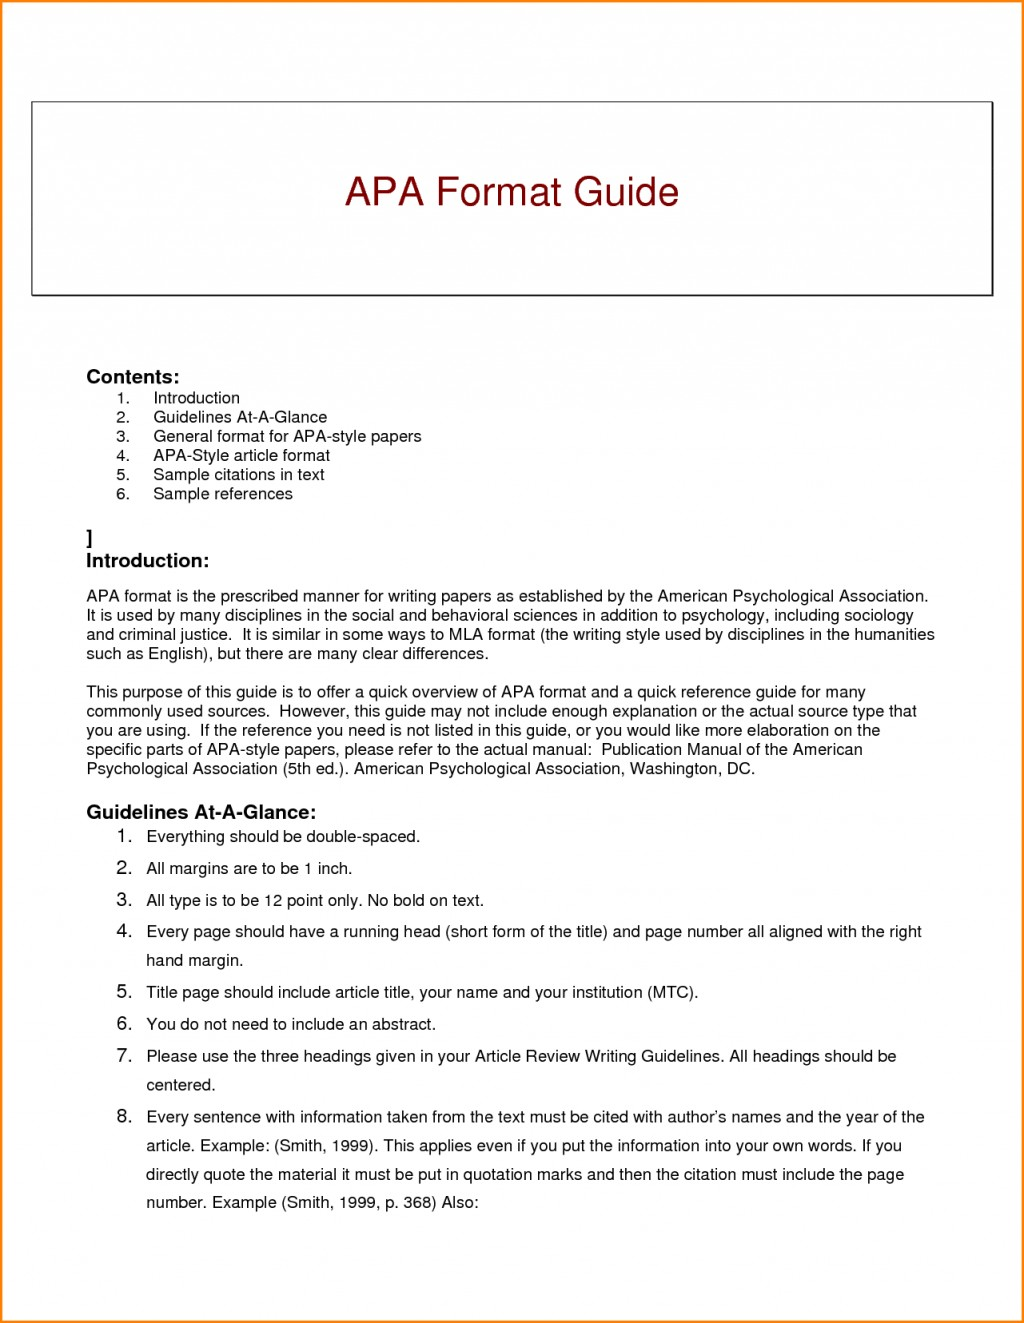 018 How Do I Cite Research Paper In Apa Format Staggering A To Sources Large